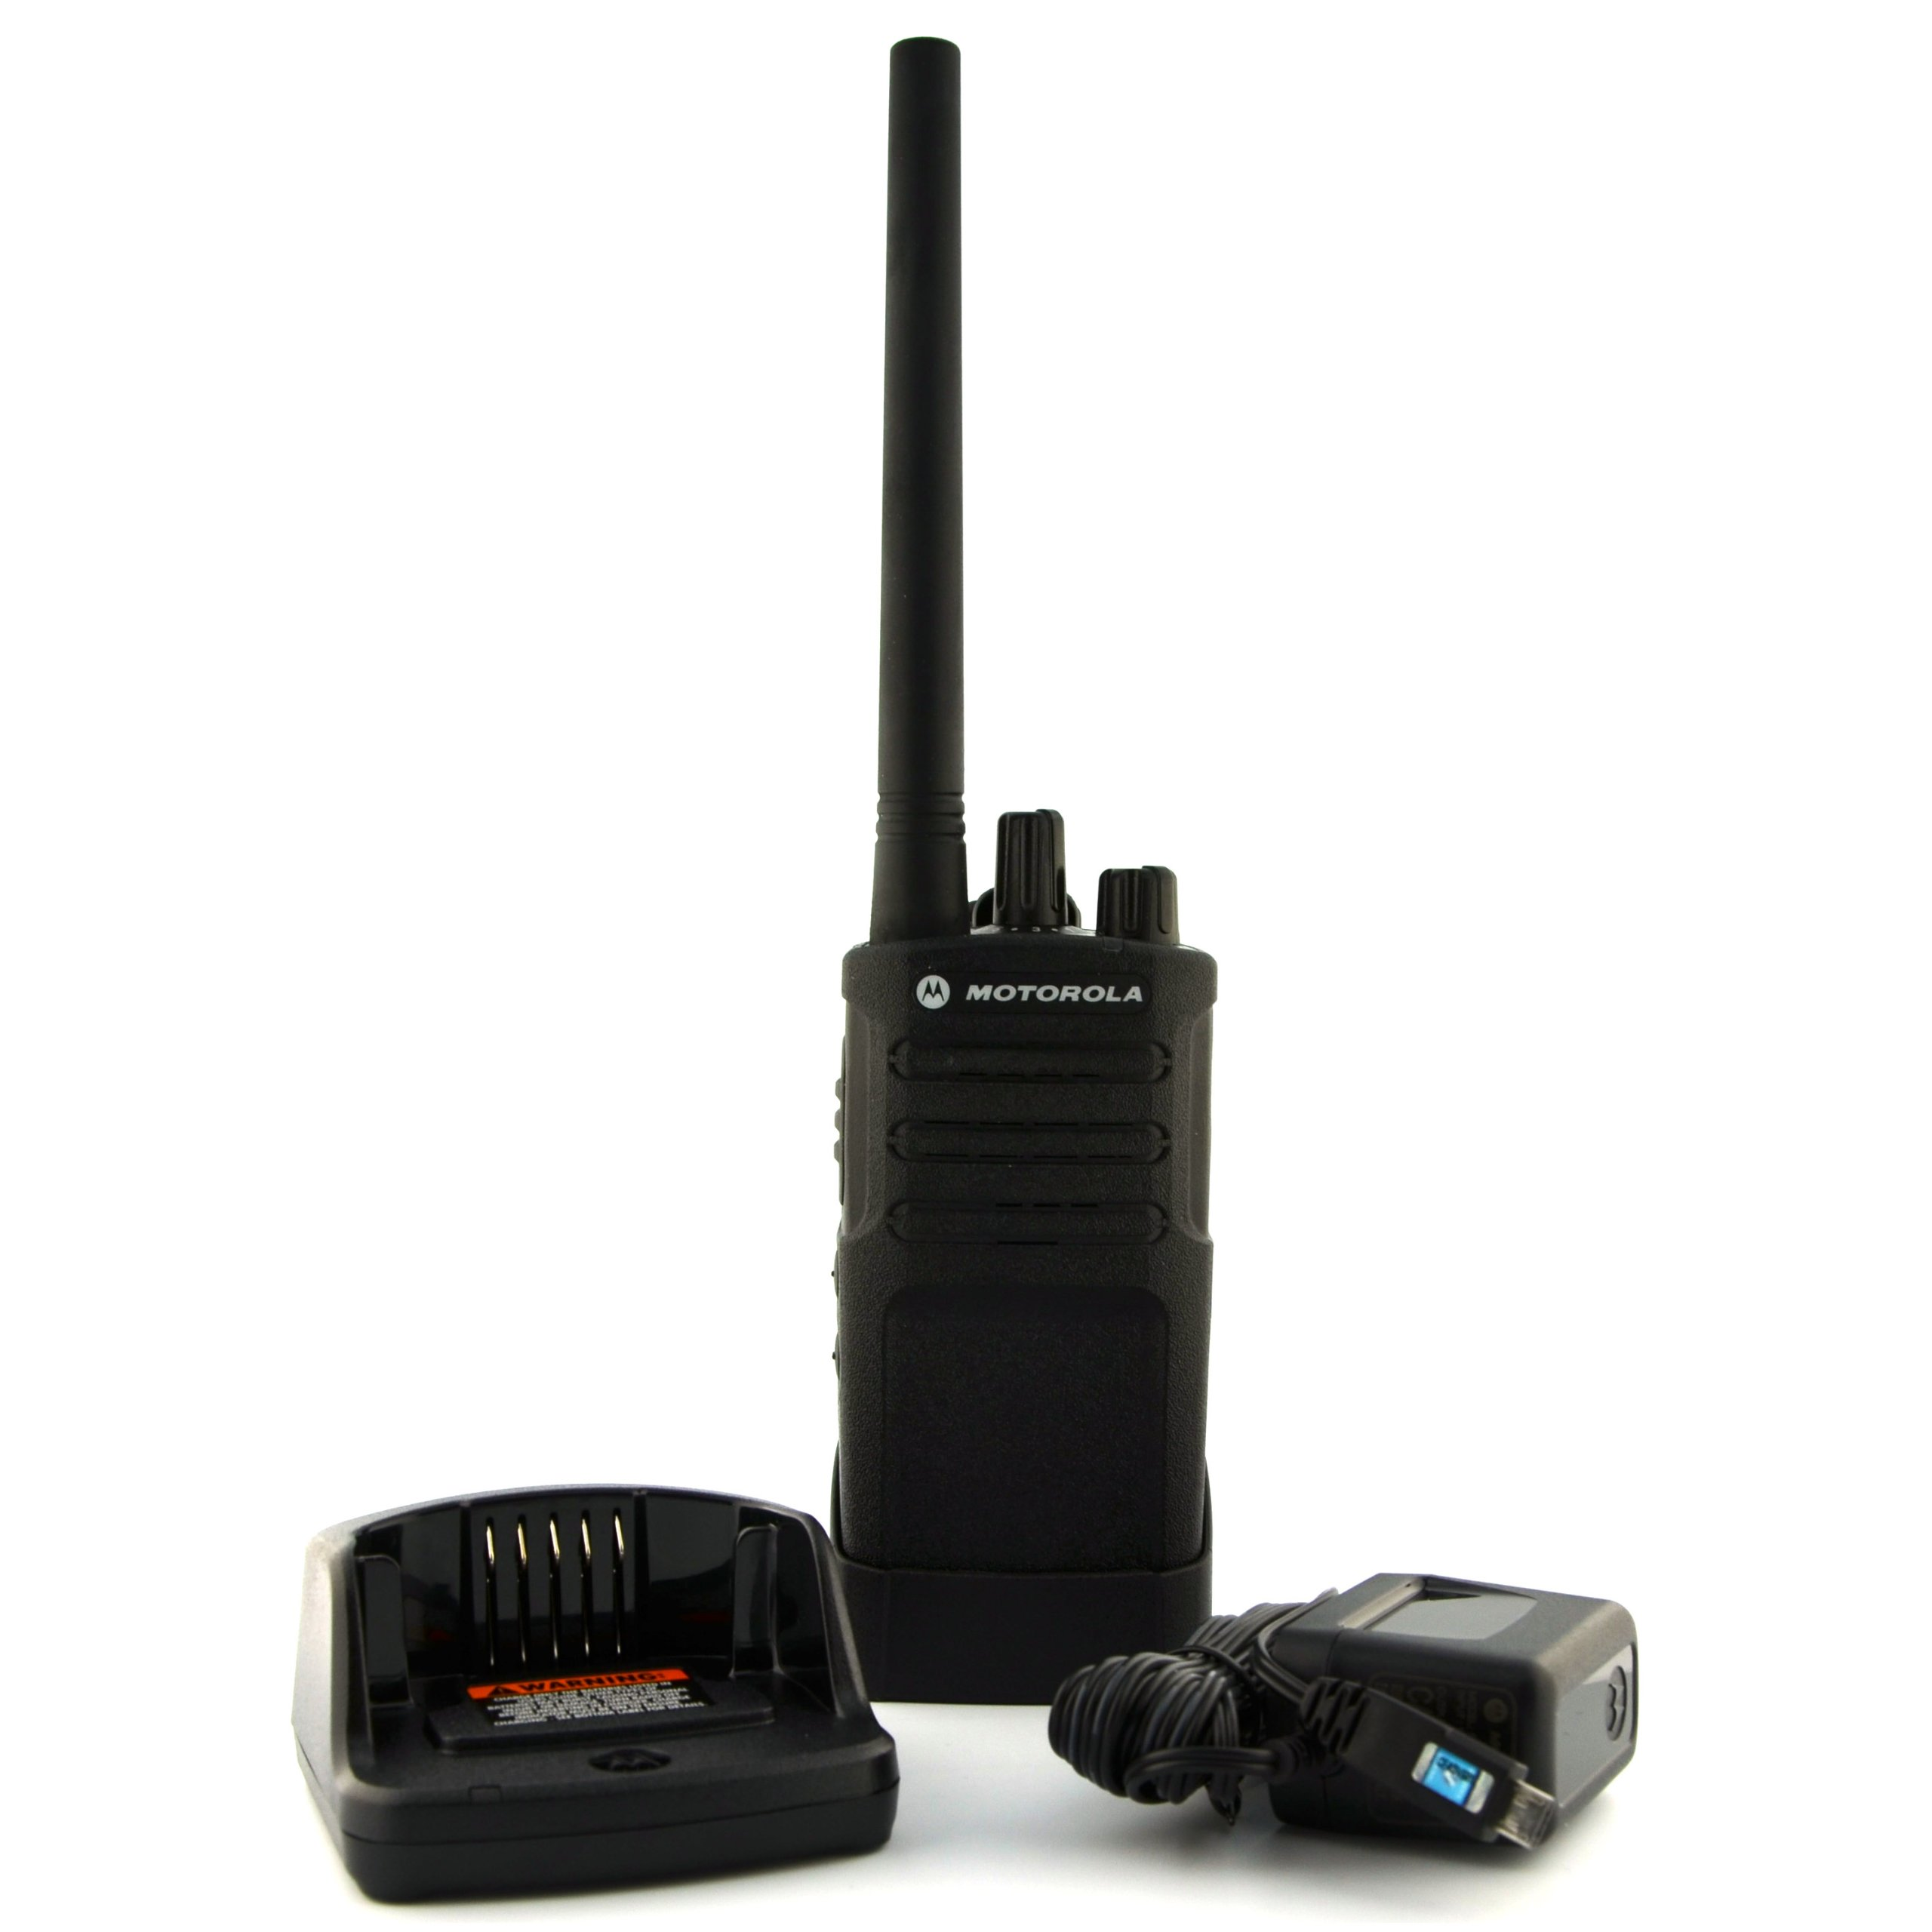 Motorola RMV2080 On-Site 8 Channel VHF Rugged Two-Way Business Radio with NOAA (Black)